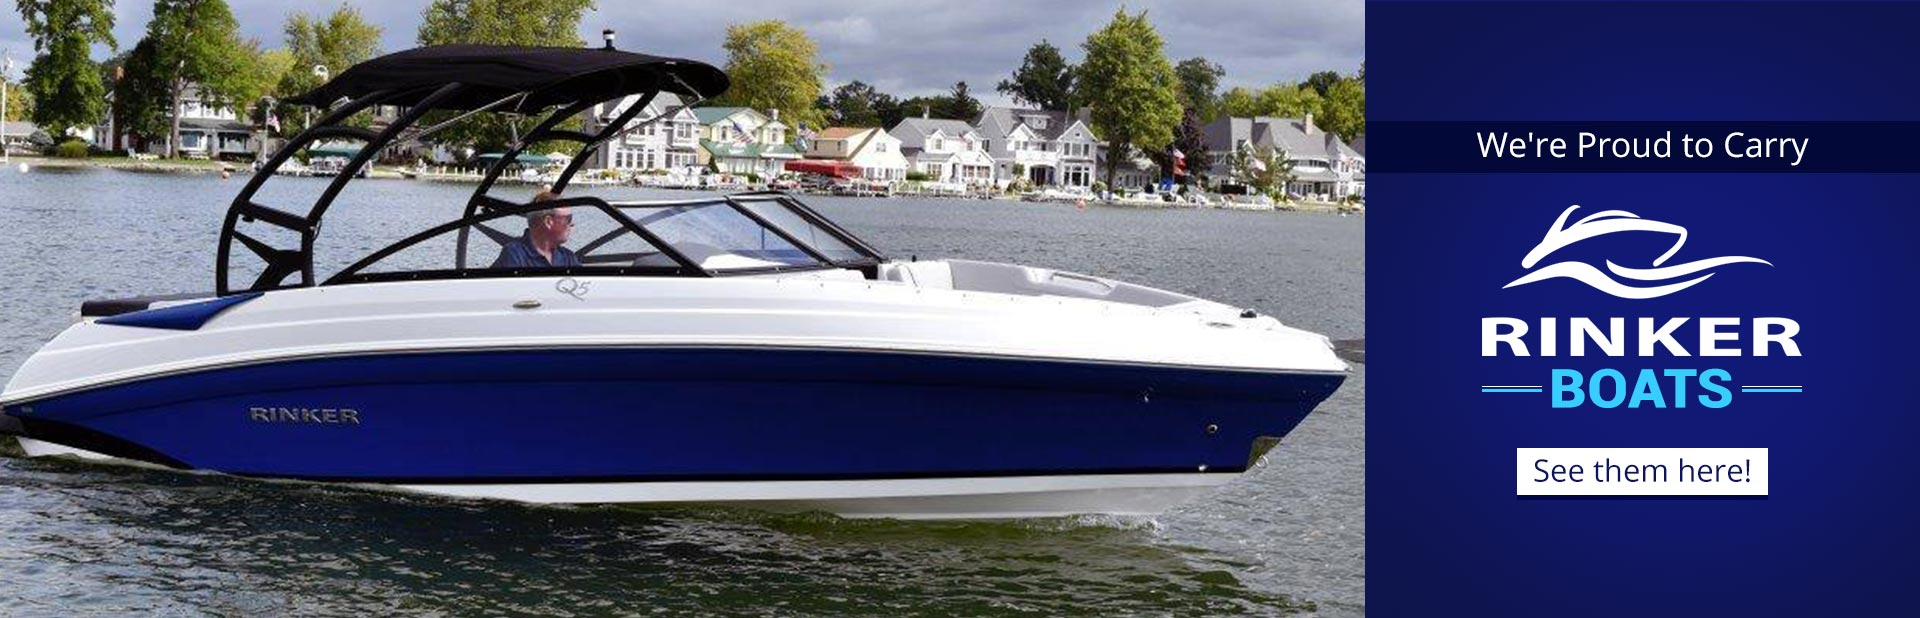 We're proud to carry Rinker boats!